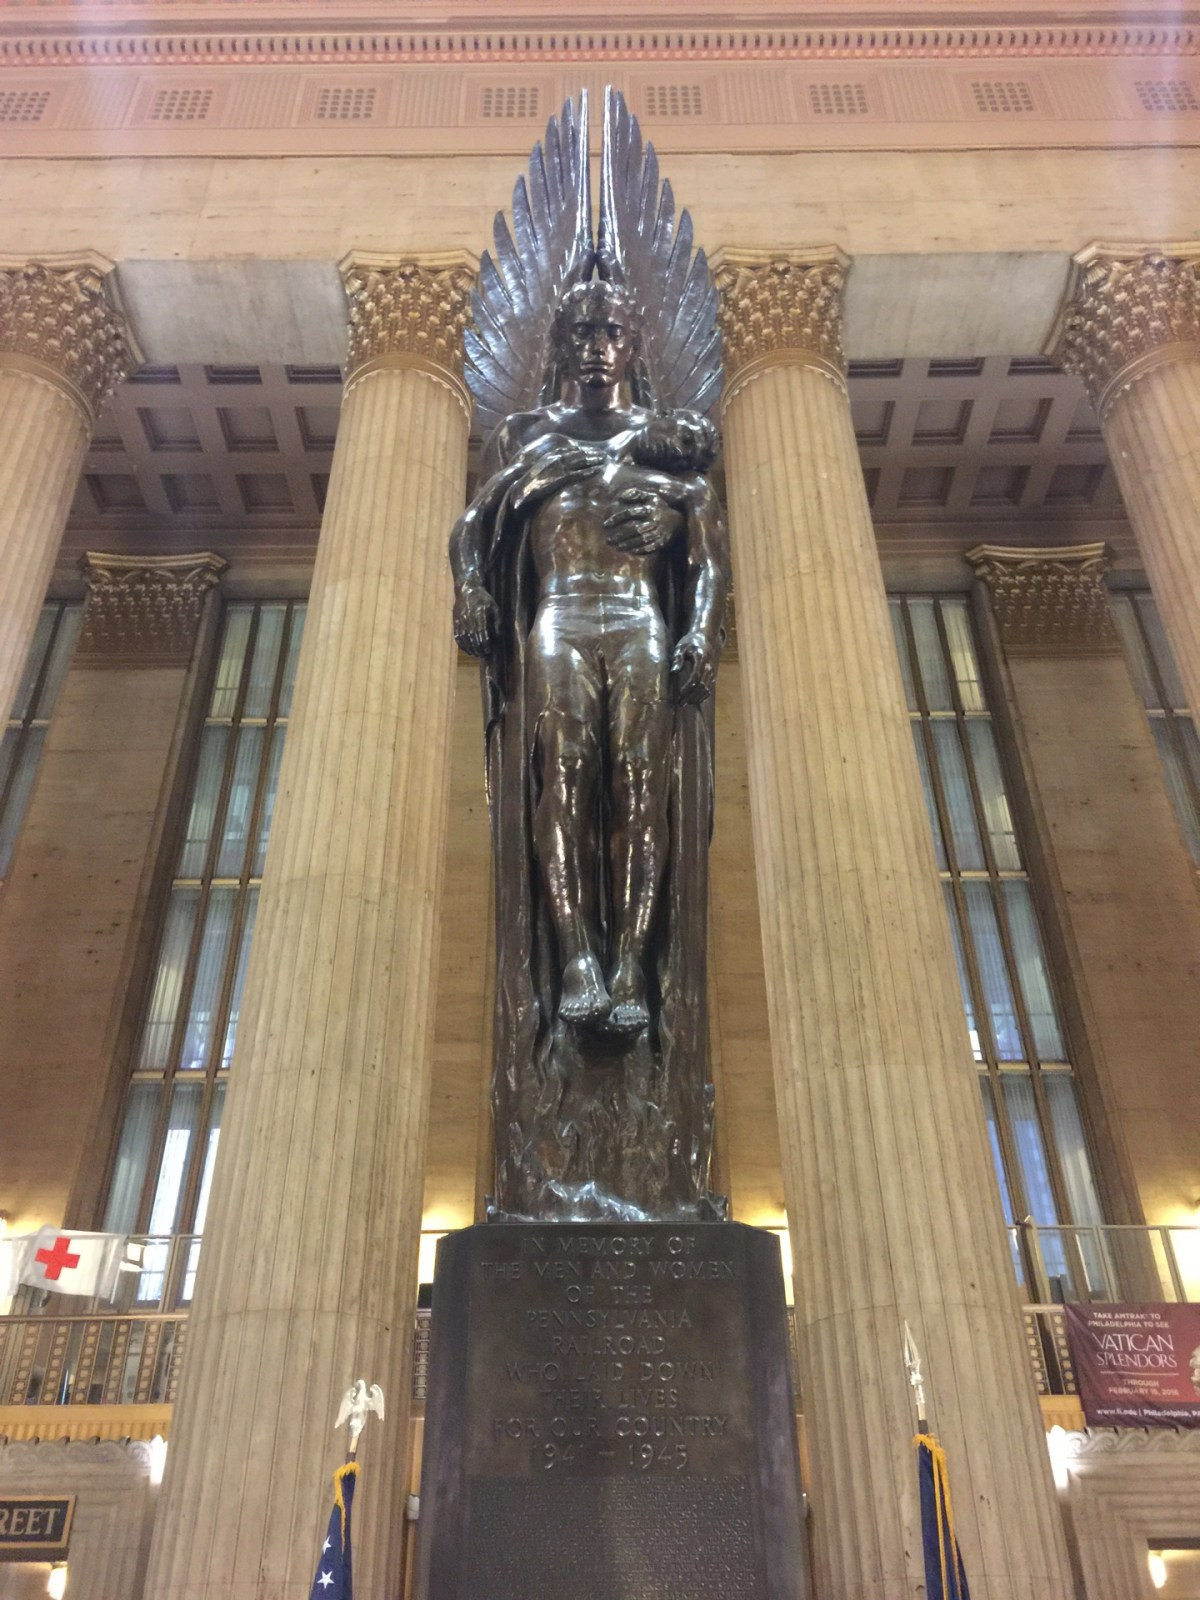 Checked in at 30th Street Station